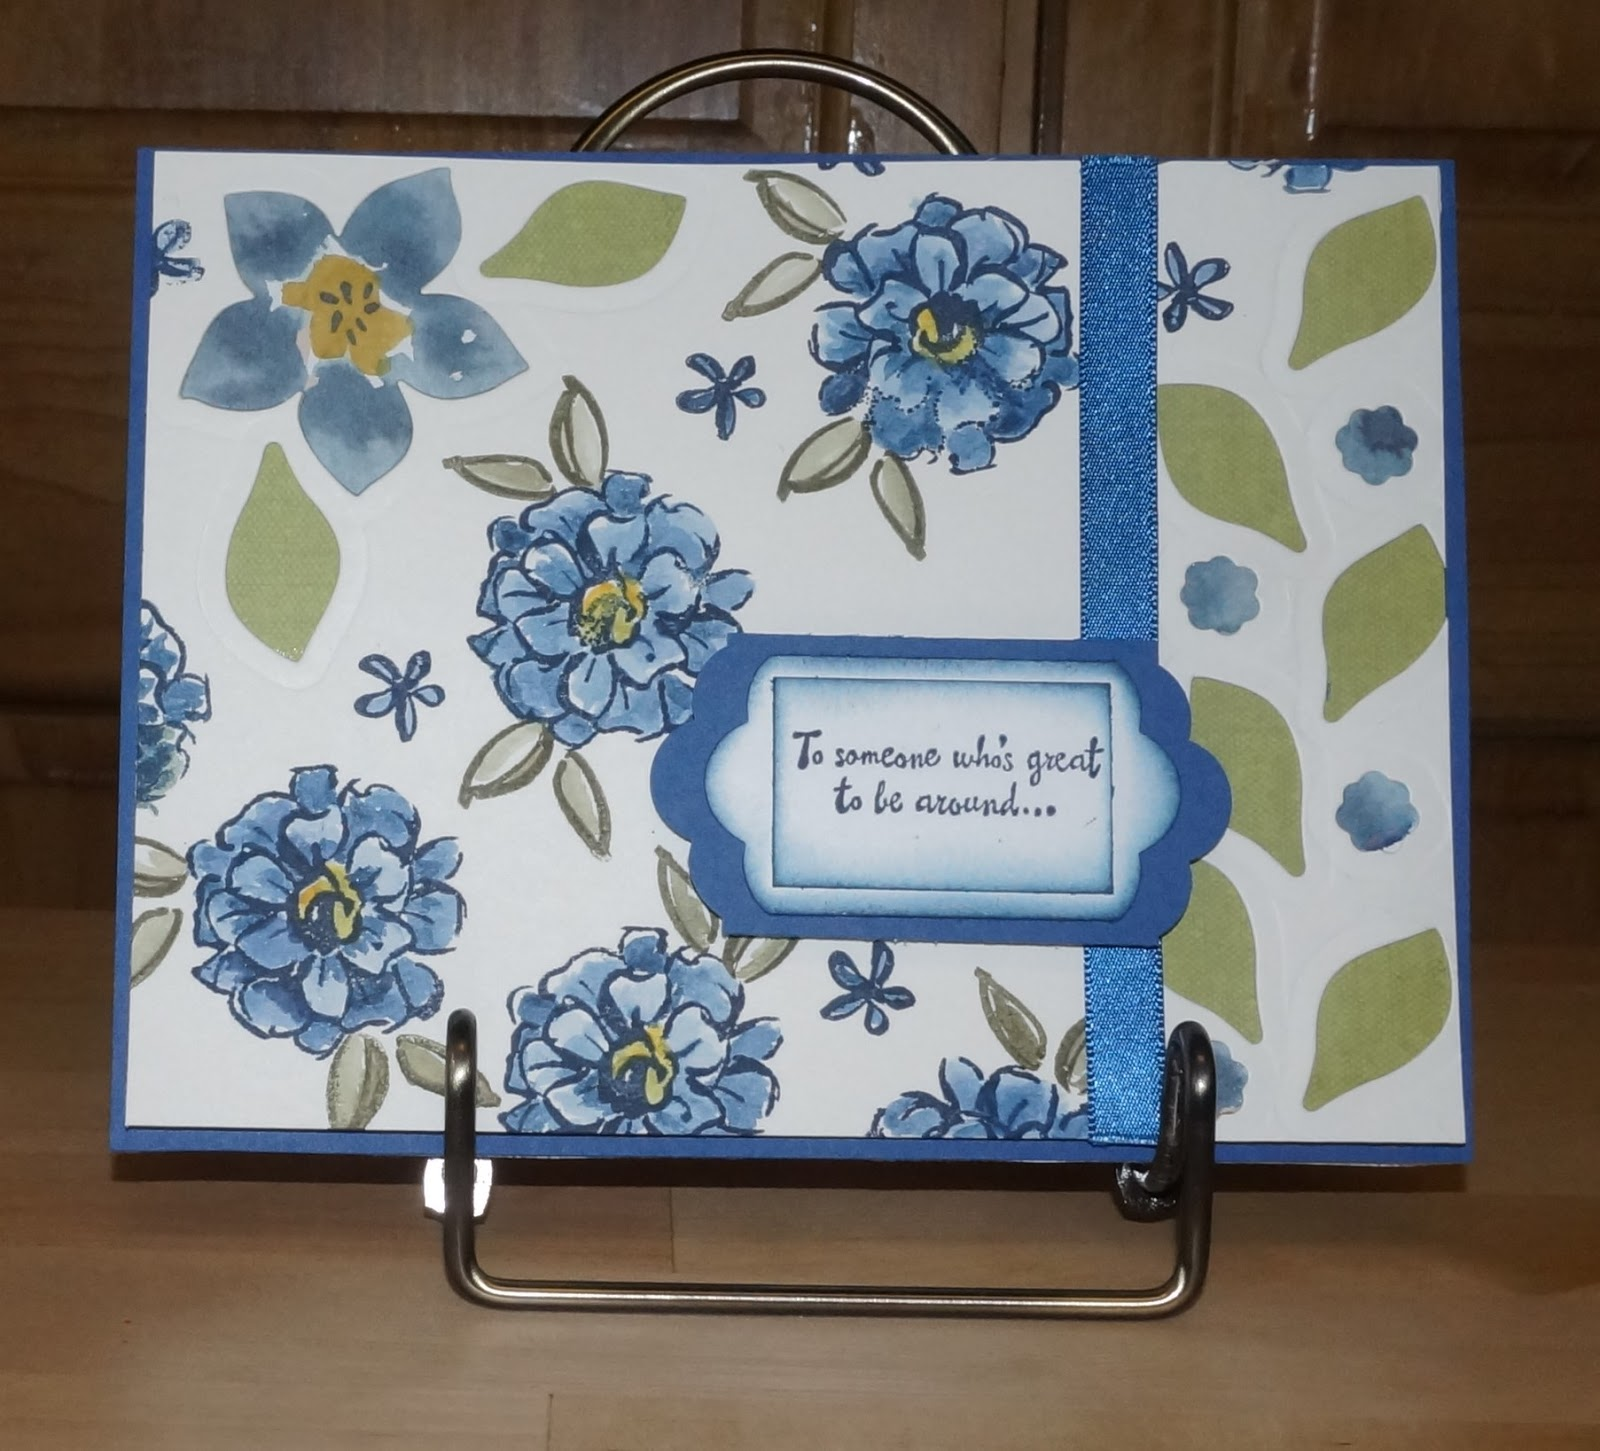 Watercoloring Is So Easy With The What I Love Stamp Set In Stampin Up Sale A Bration Brochure